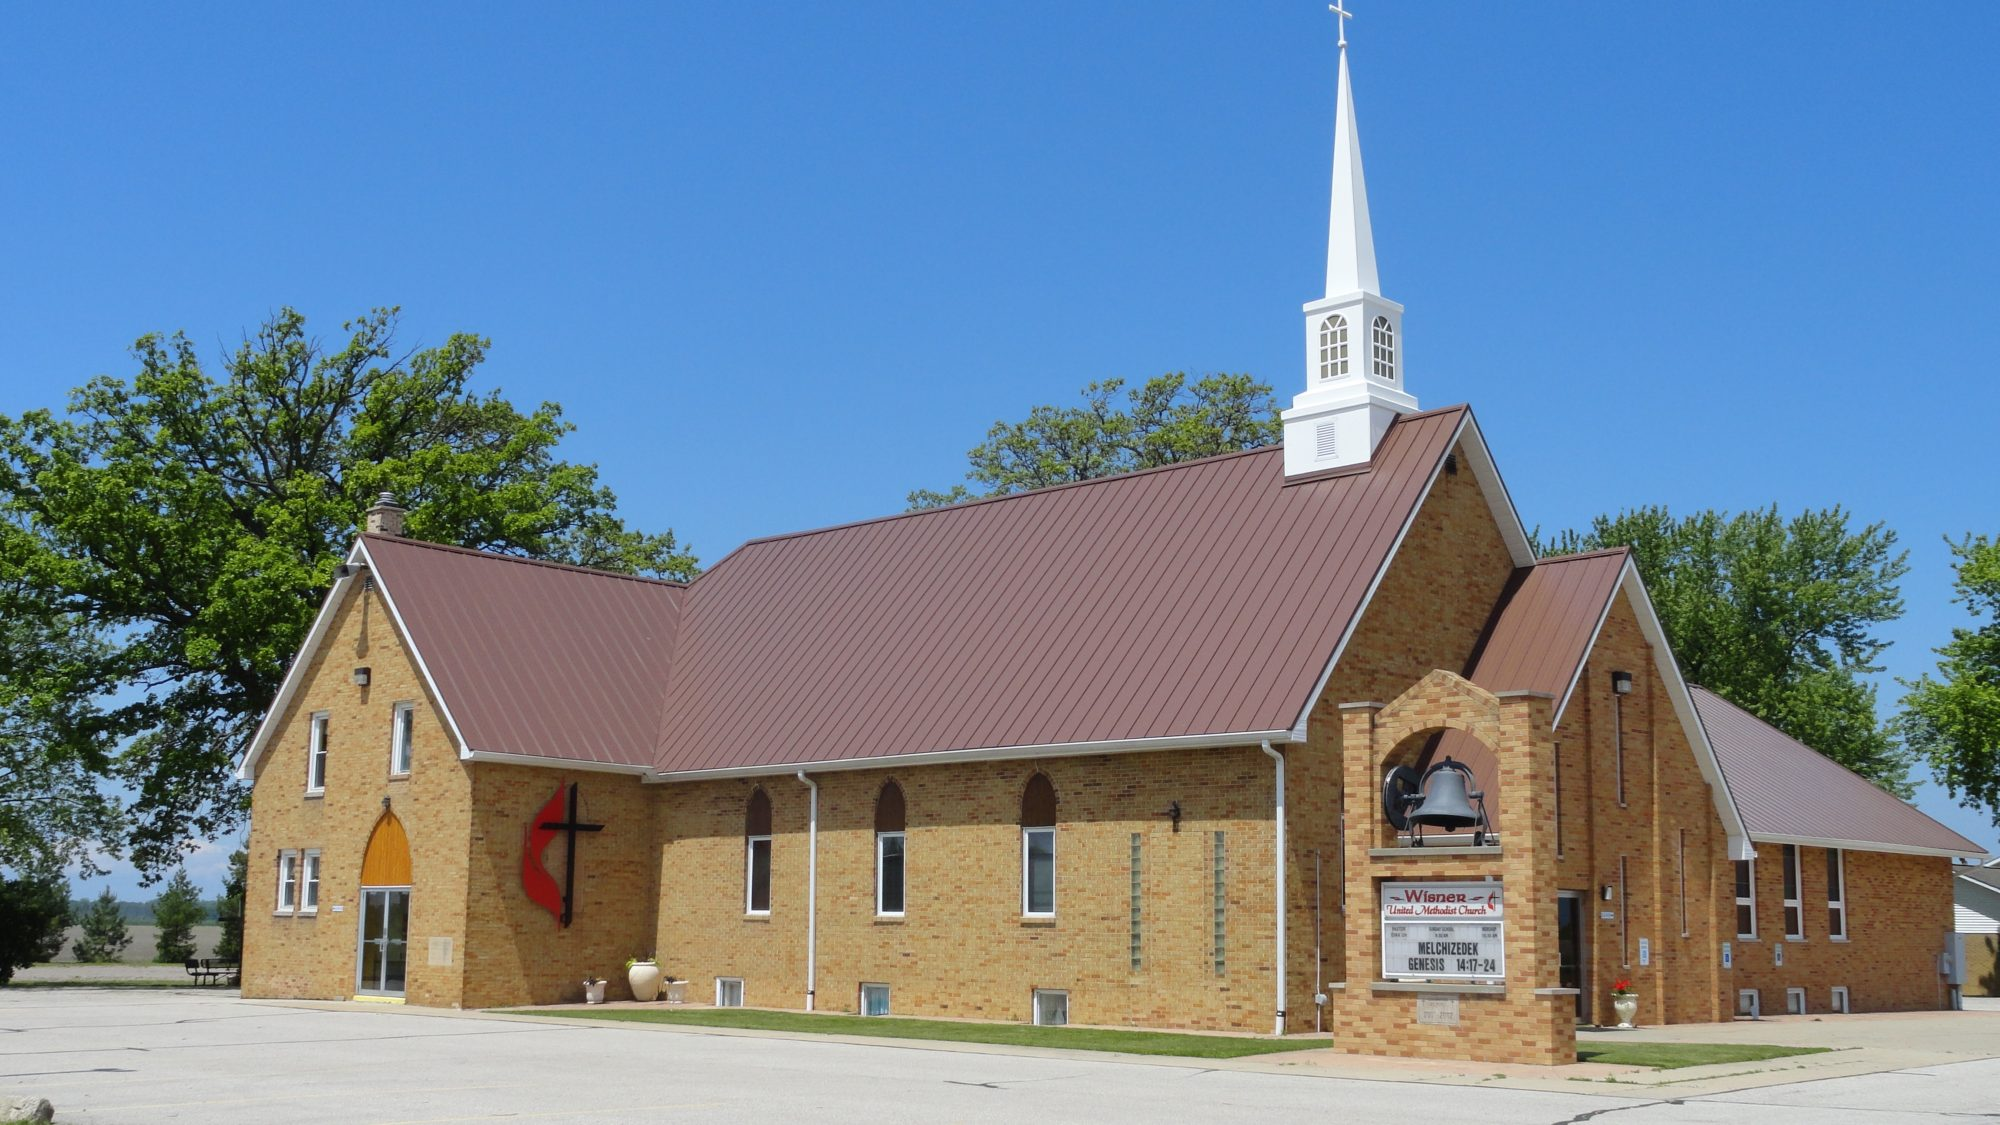 Wisner United Methodist Church